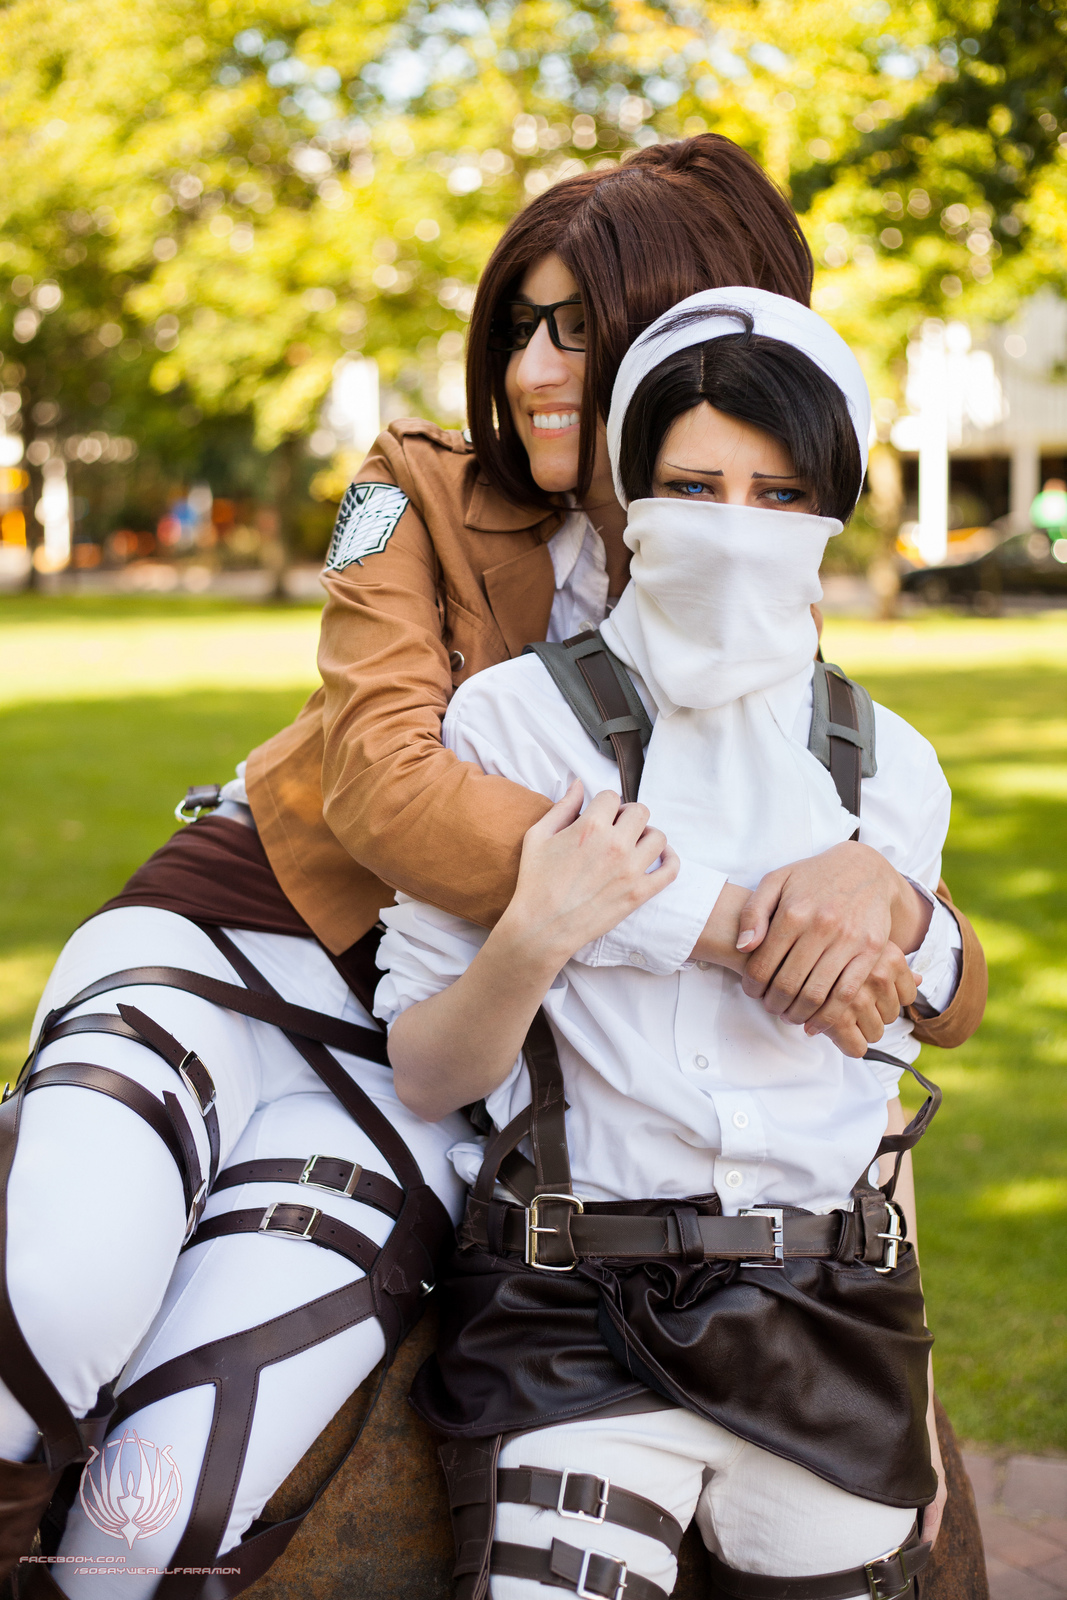 Attack on Titan - Hanji/Levi - WHY YOU NO LOVE ME by faramon